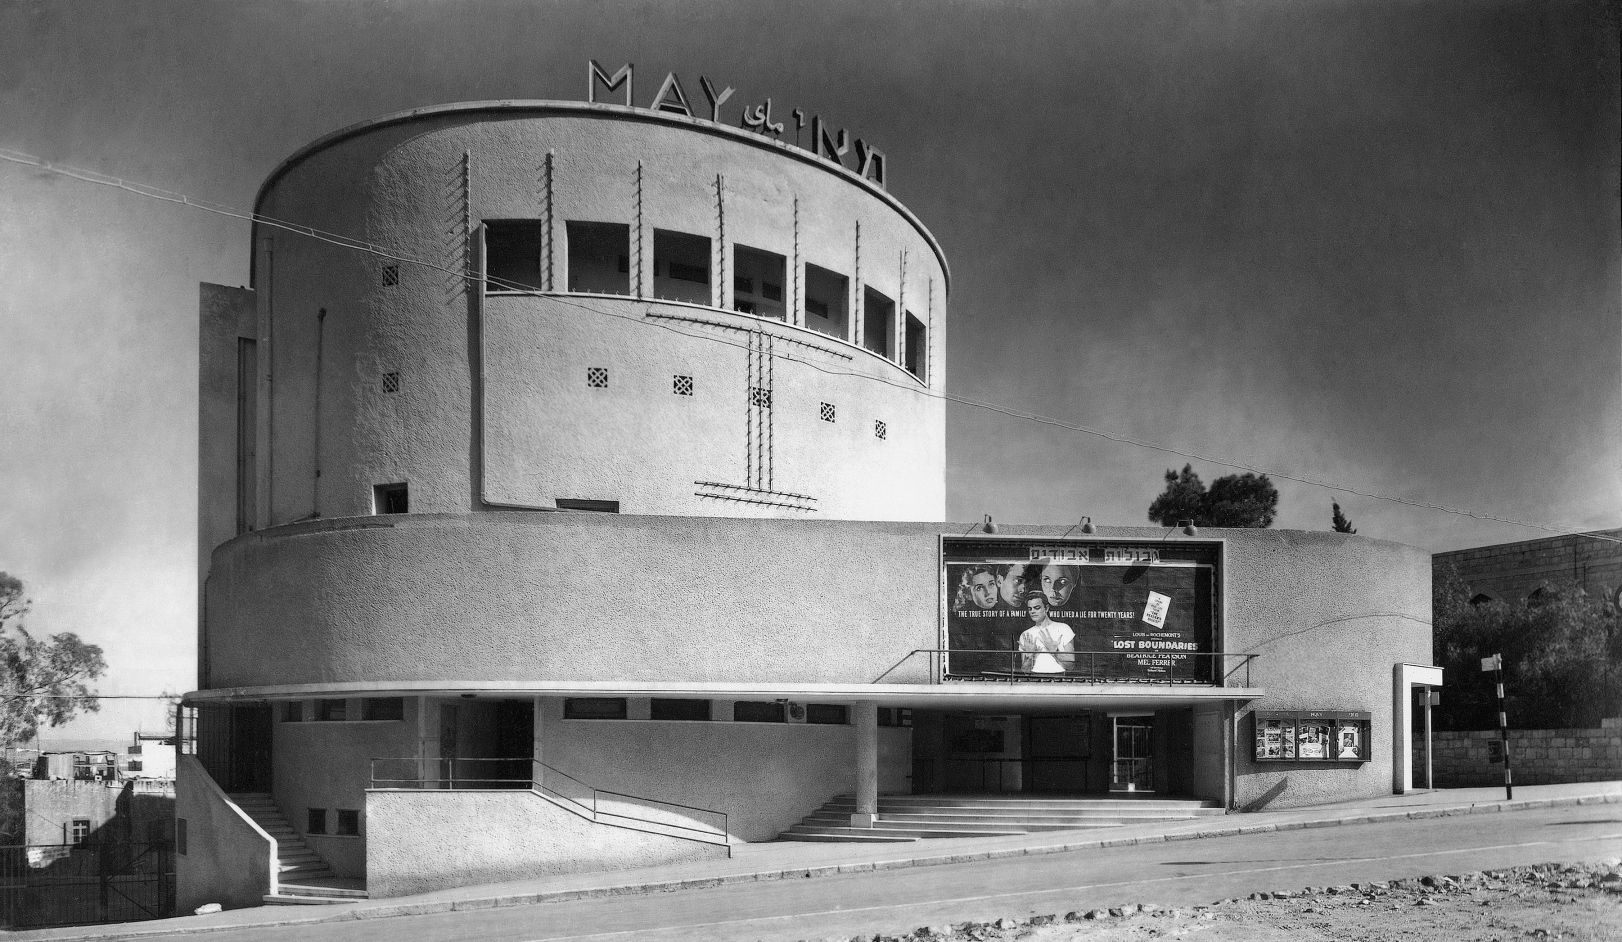 The 1930 May Cinema in Haifa was done by Yehuda Lilienfeld. Photo from the Kalter Collection